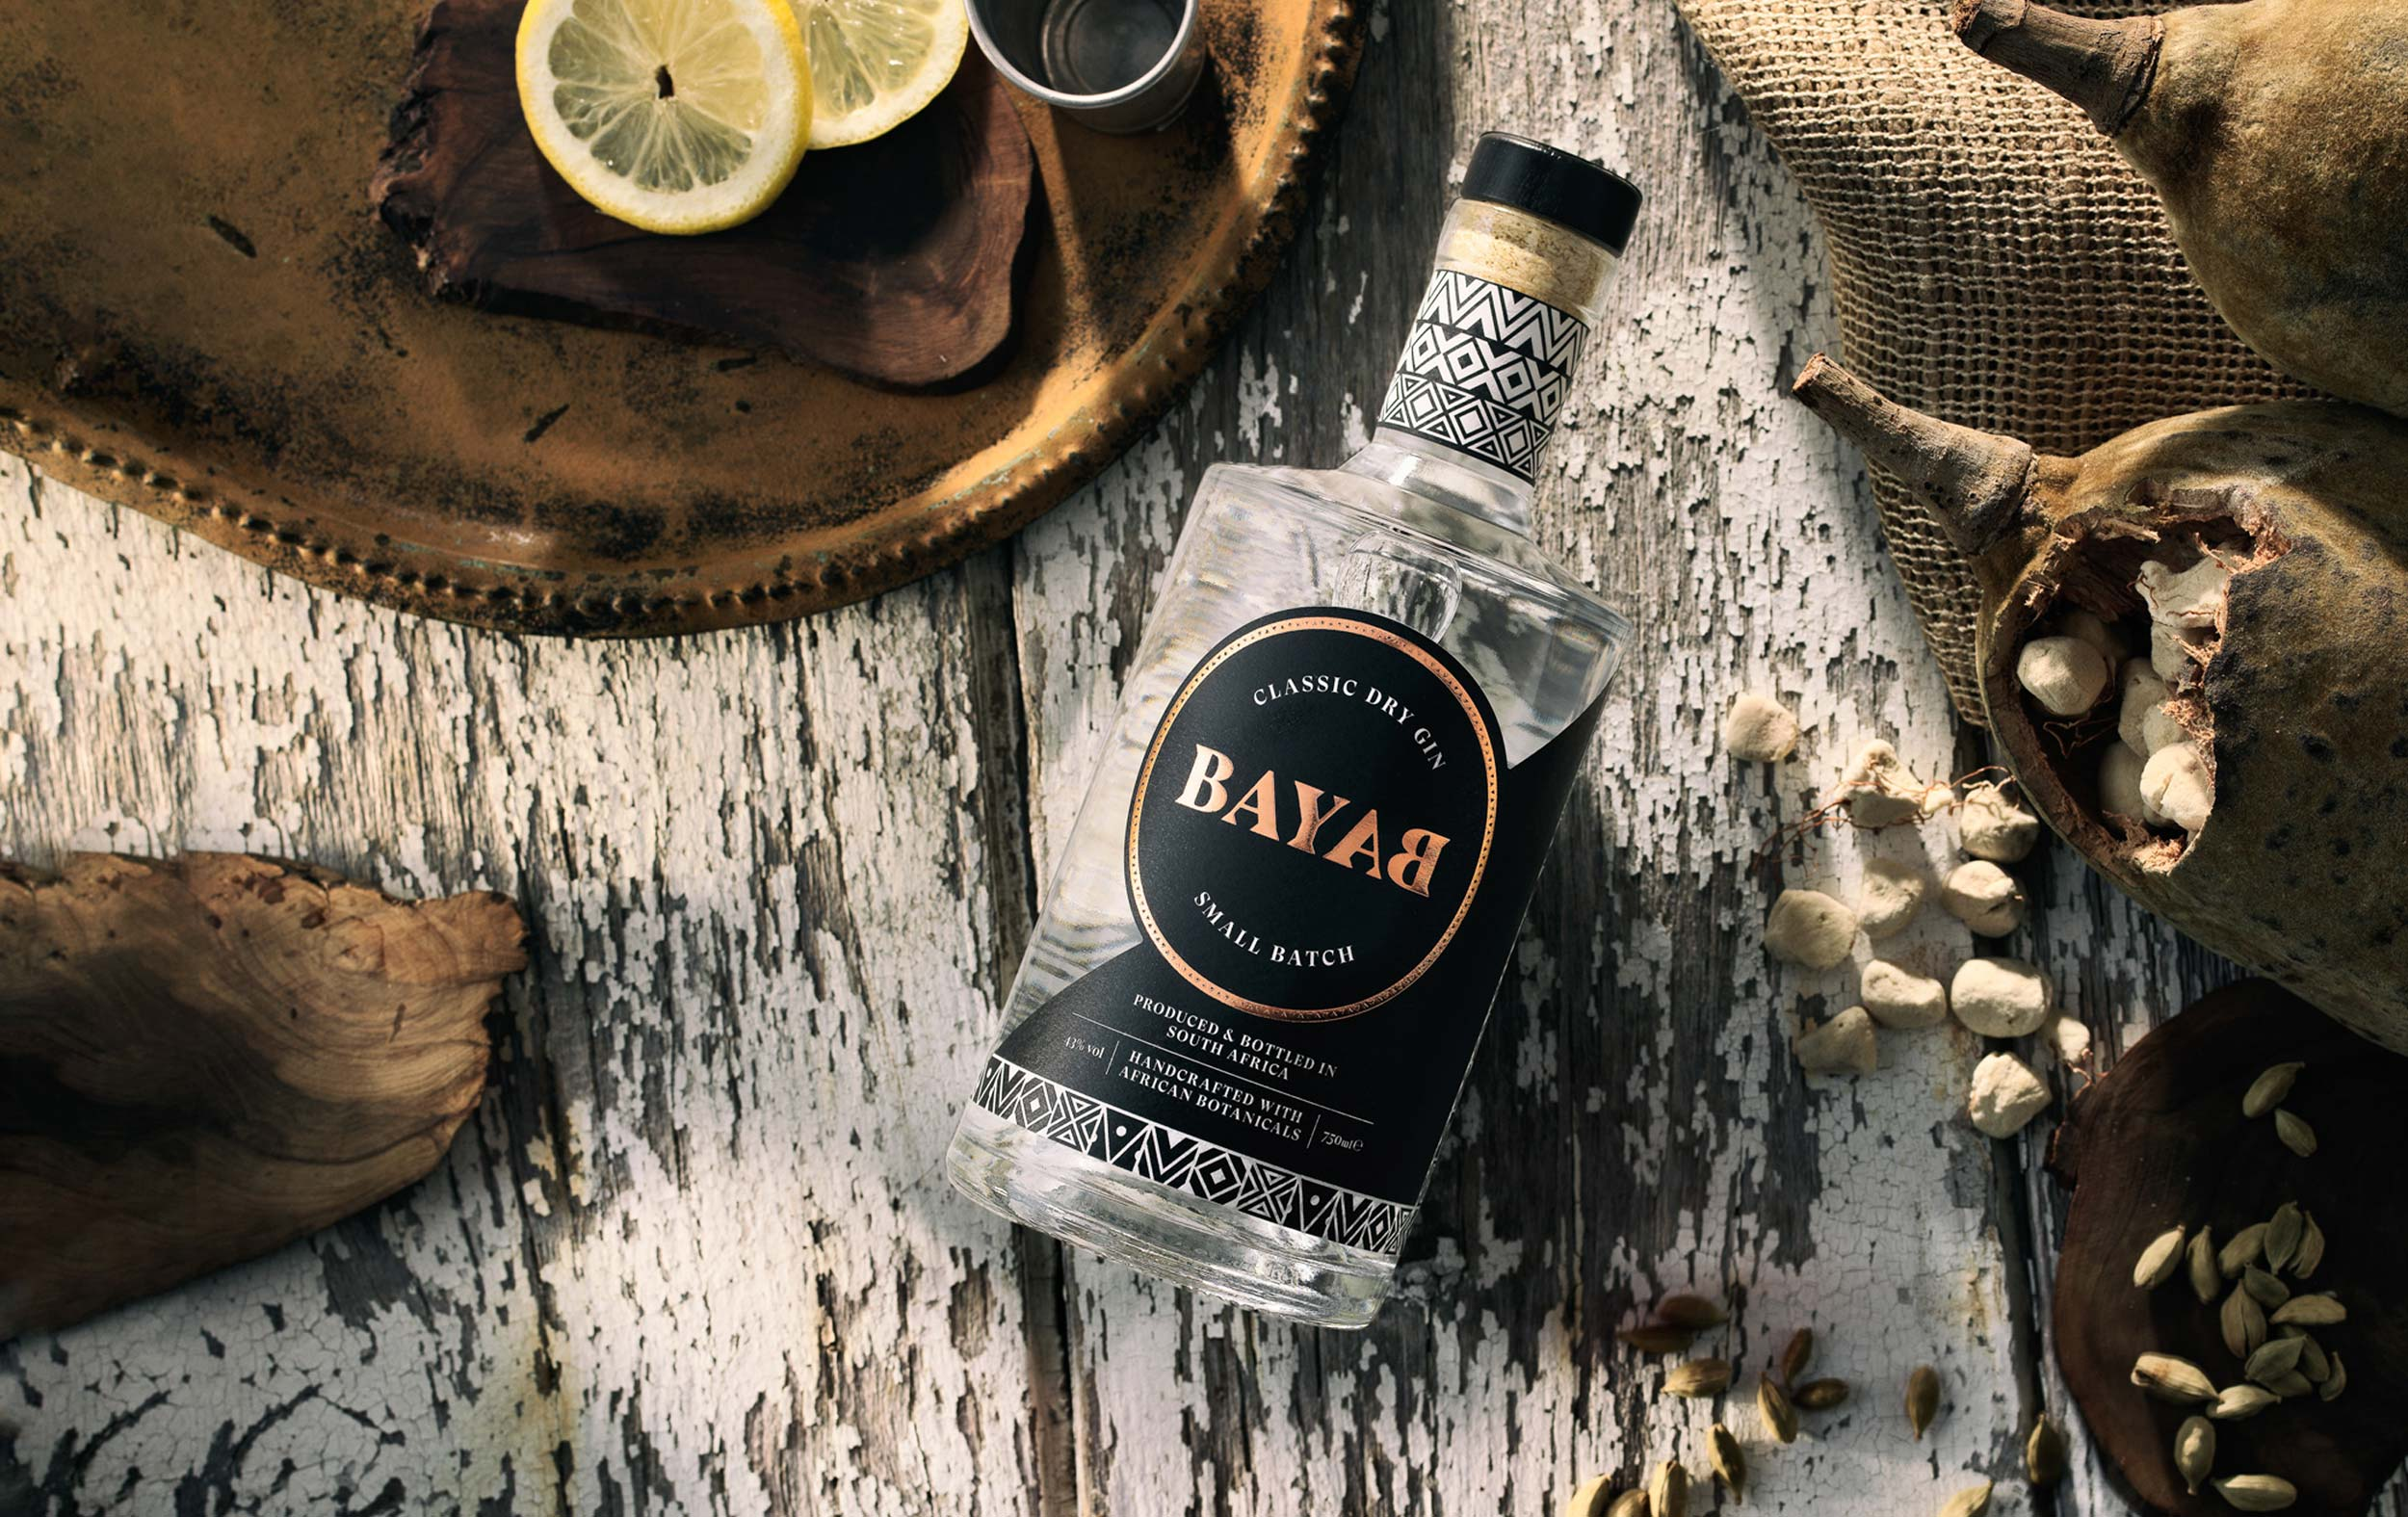 Boldly Creates Distinctive Brand and Packaging Design for Bayab Gin